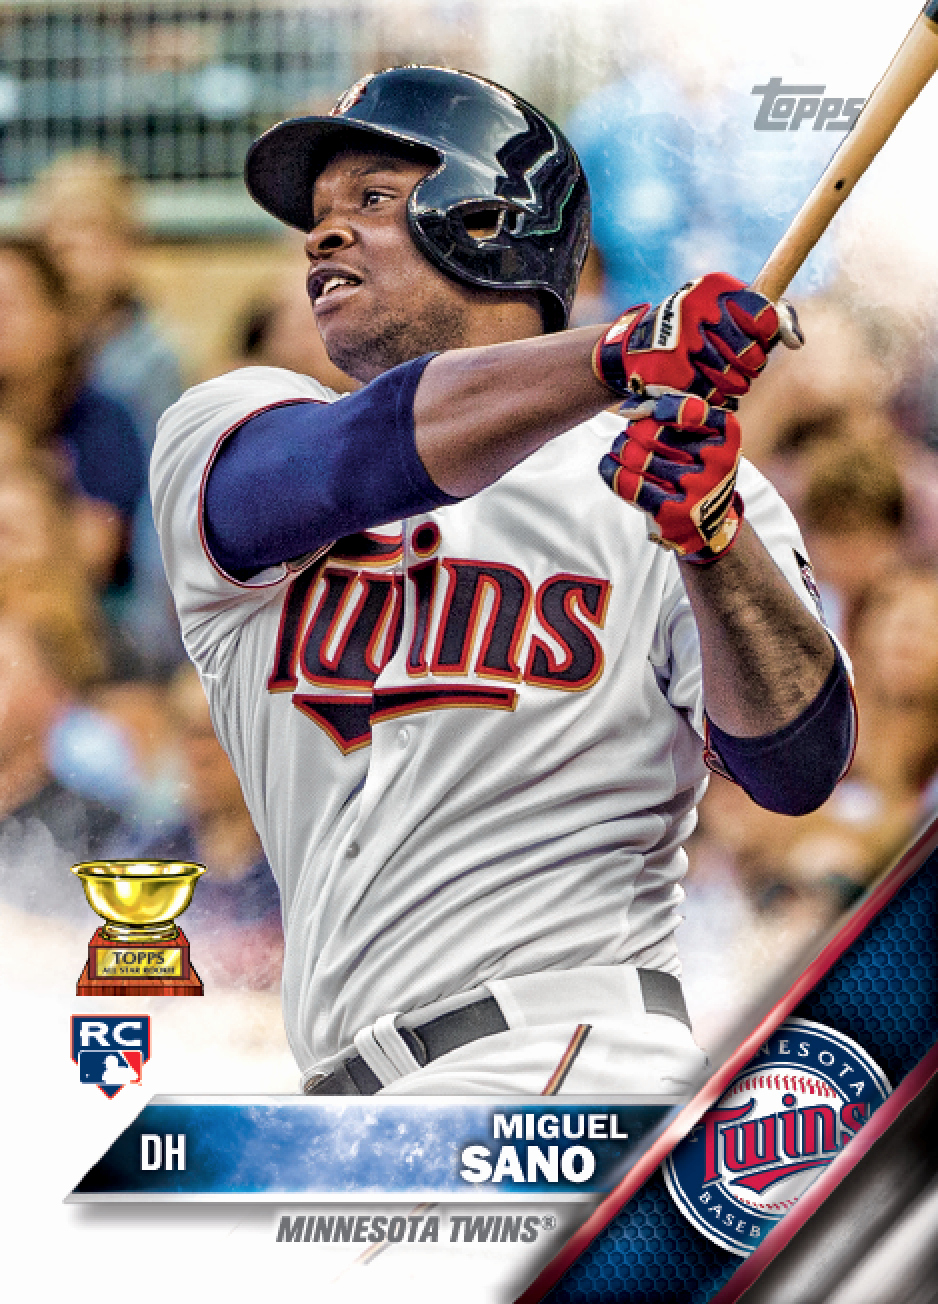 Topps Baseball Card Template Luxury 2016 topps Series 1 Baseball Cards Preview Checklist